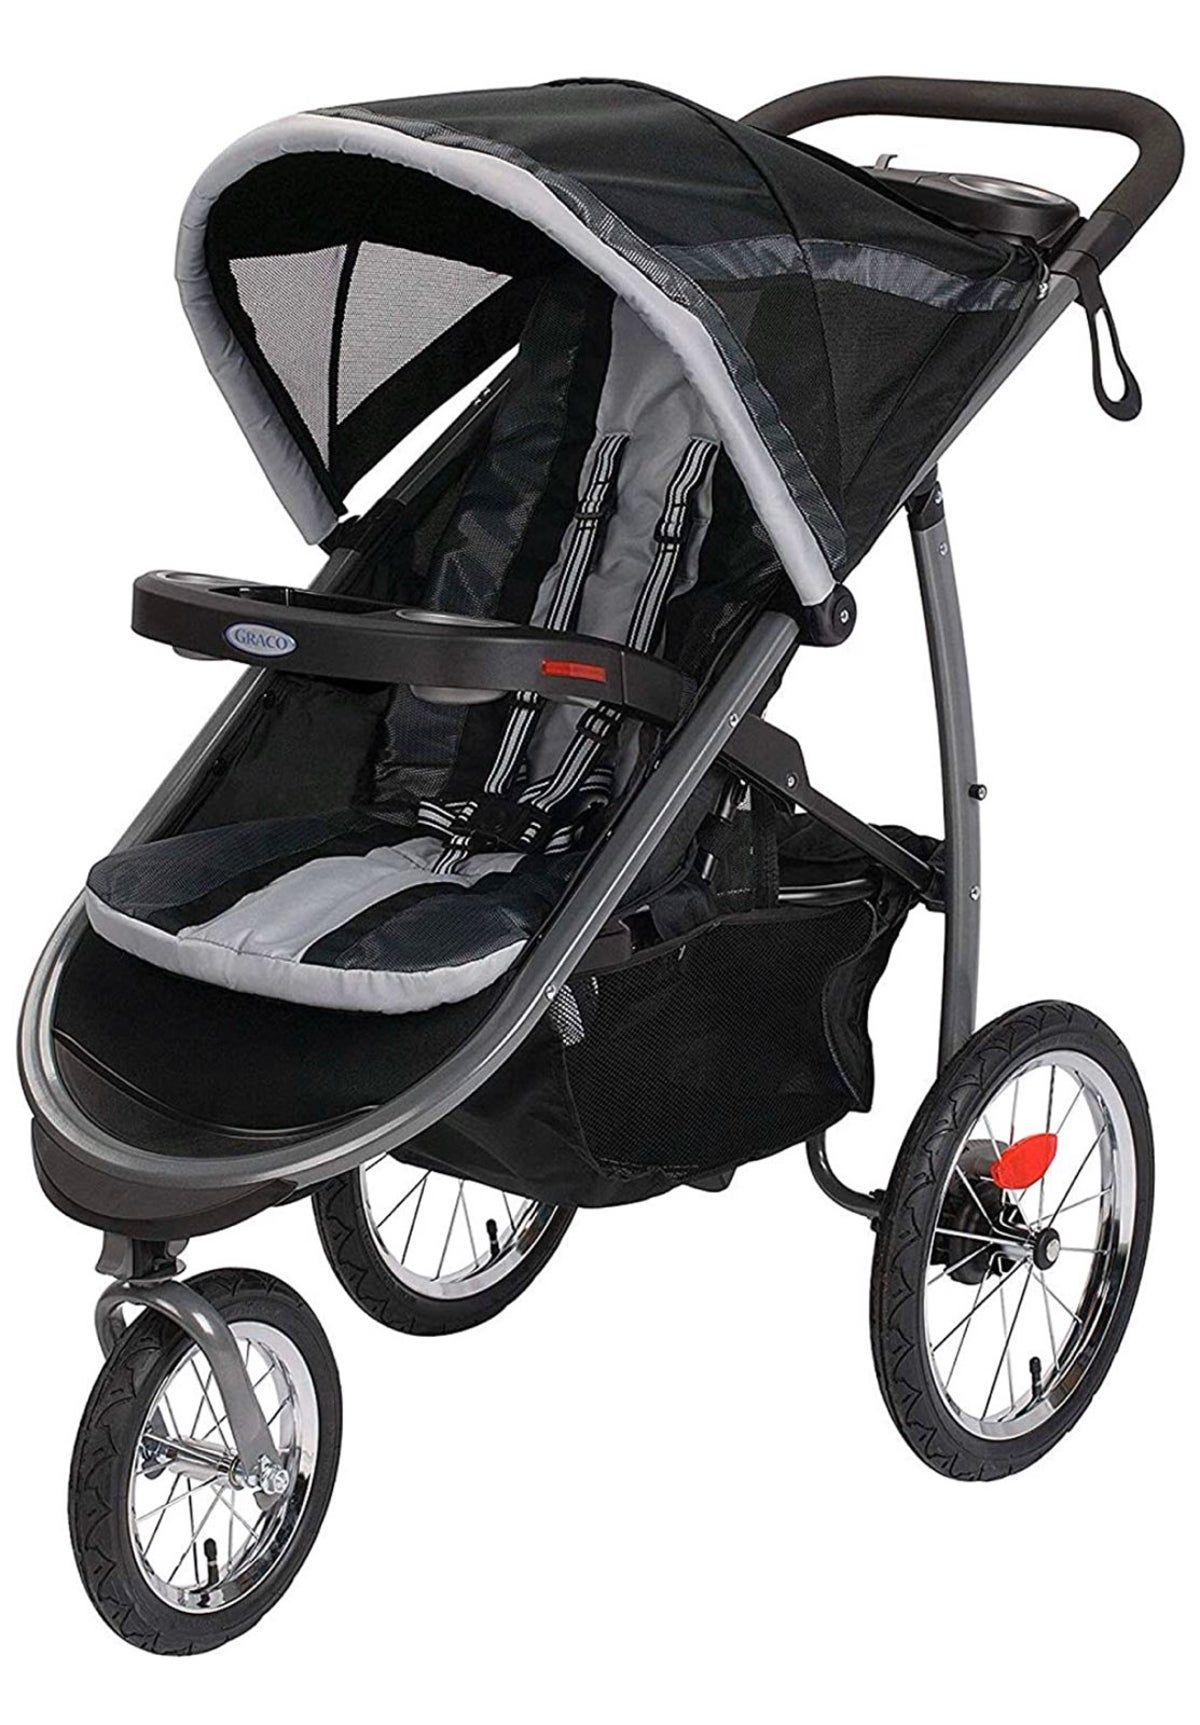 40+ Graco click connect stroller manual information